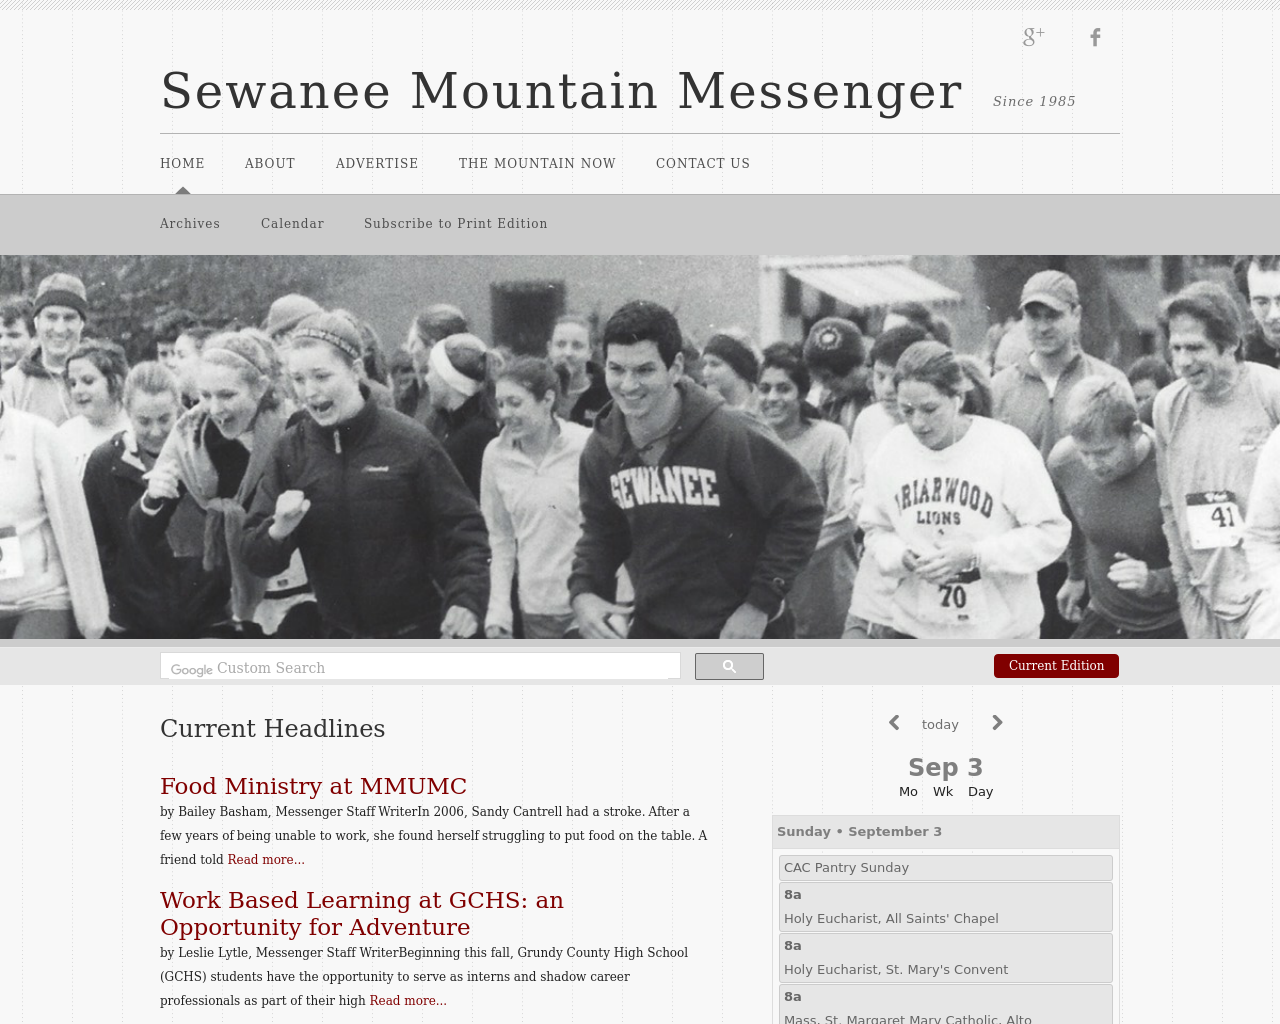 The-Sewanee-Mountain-Messenger-Advertising-Reviews-Pricing